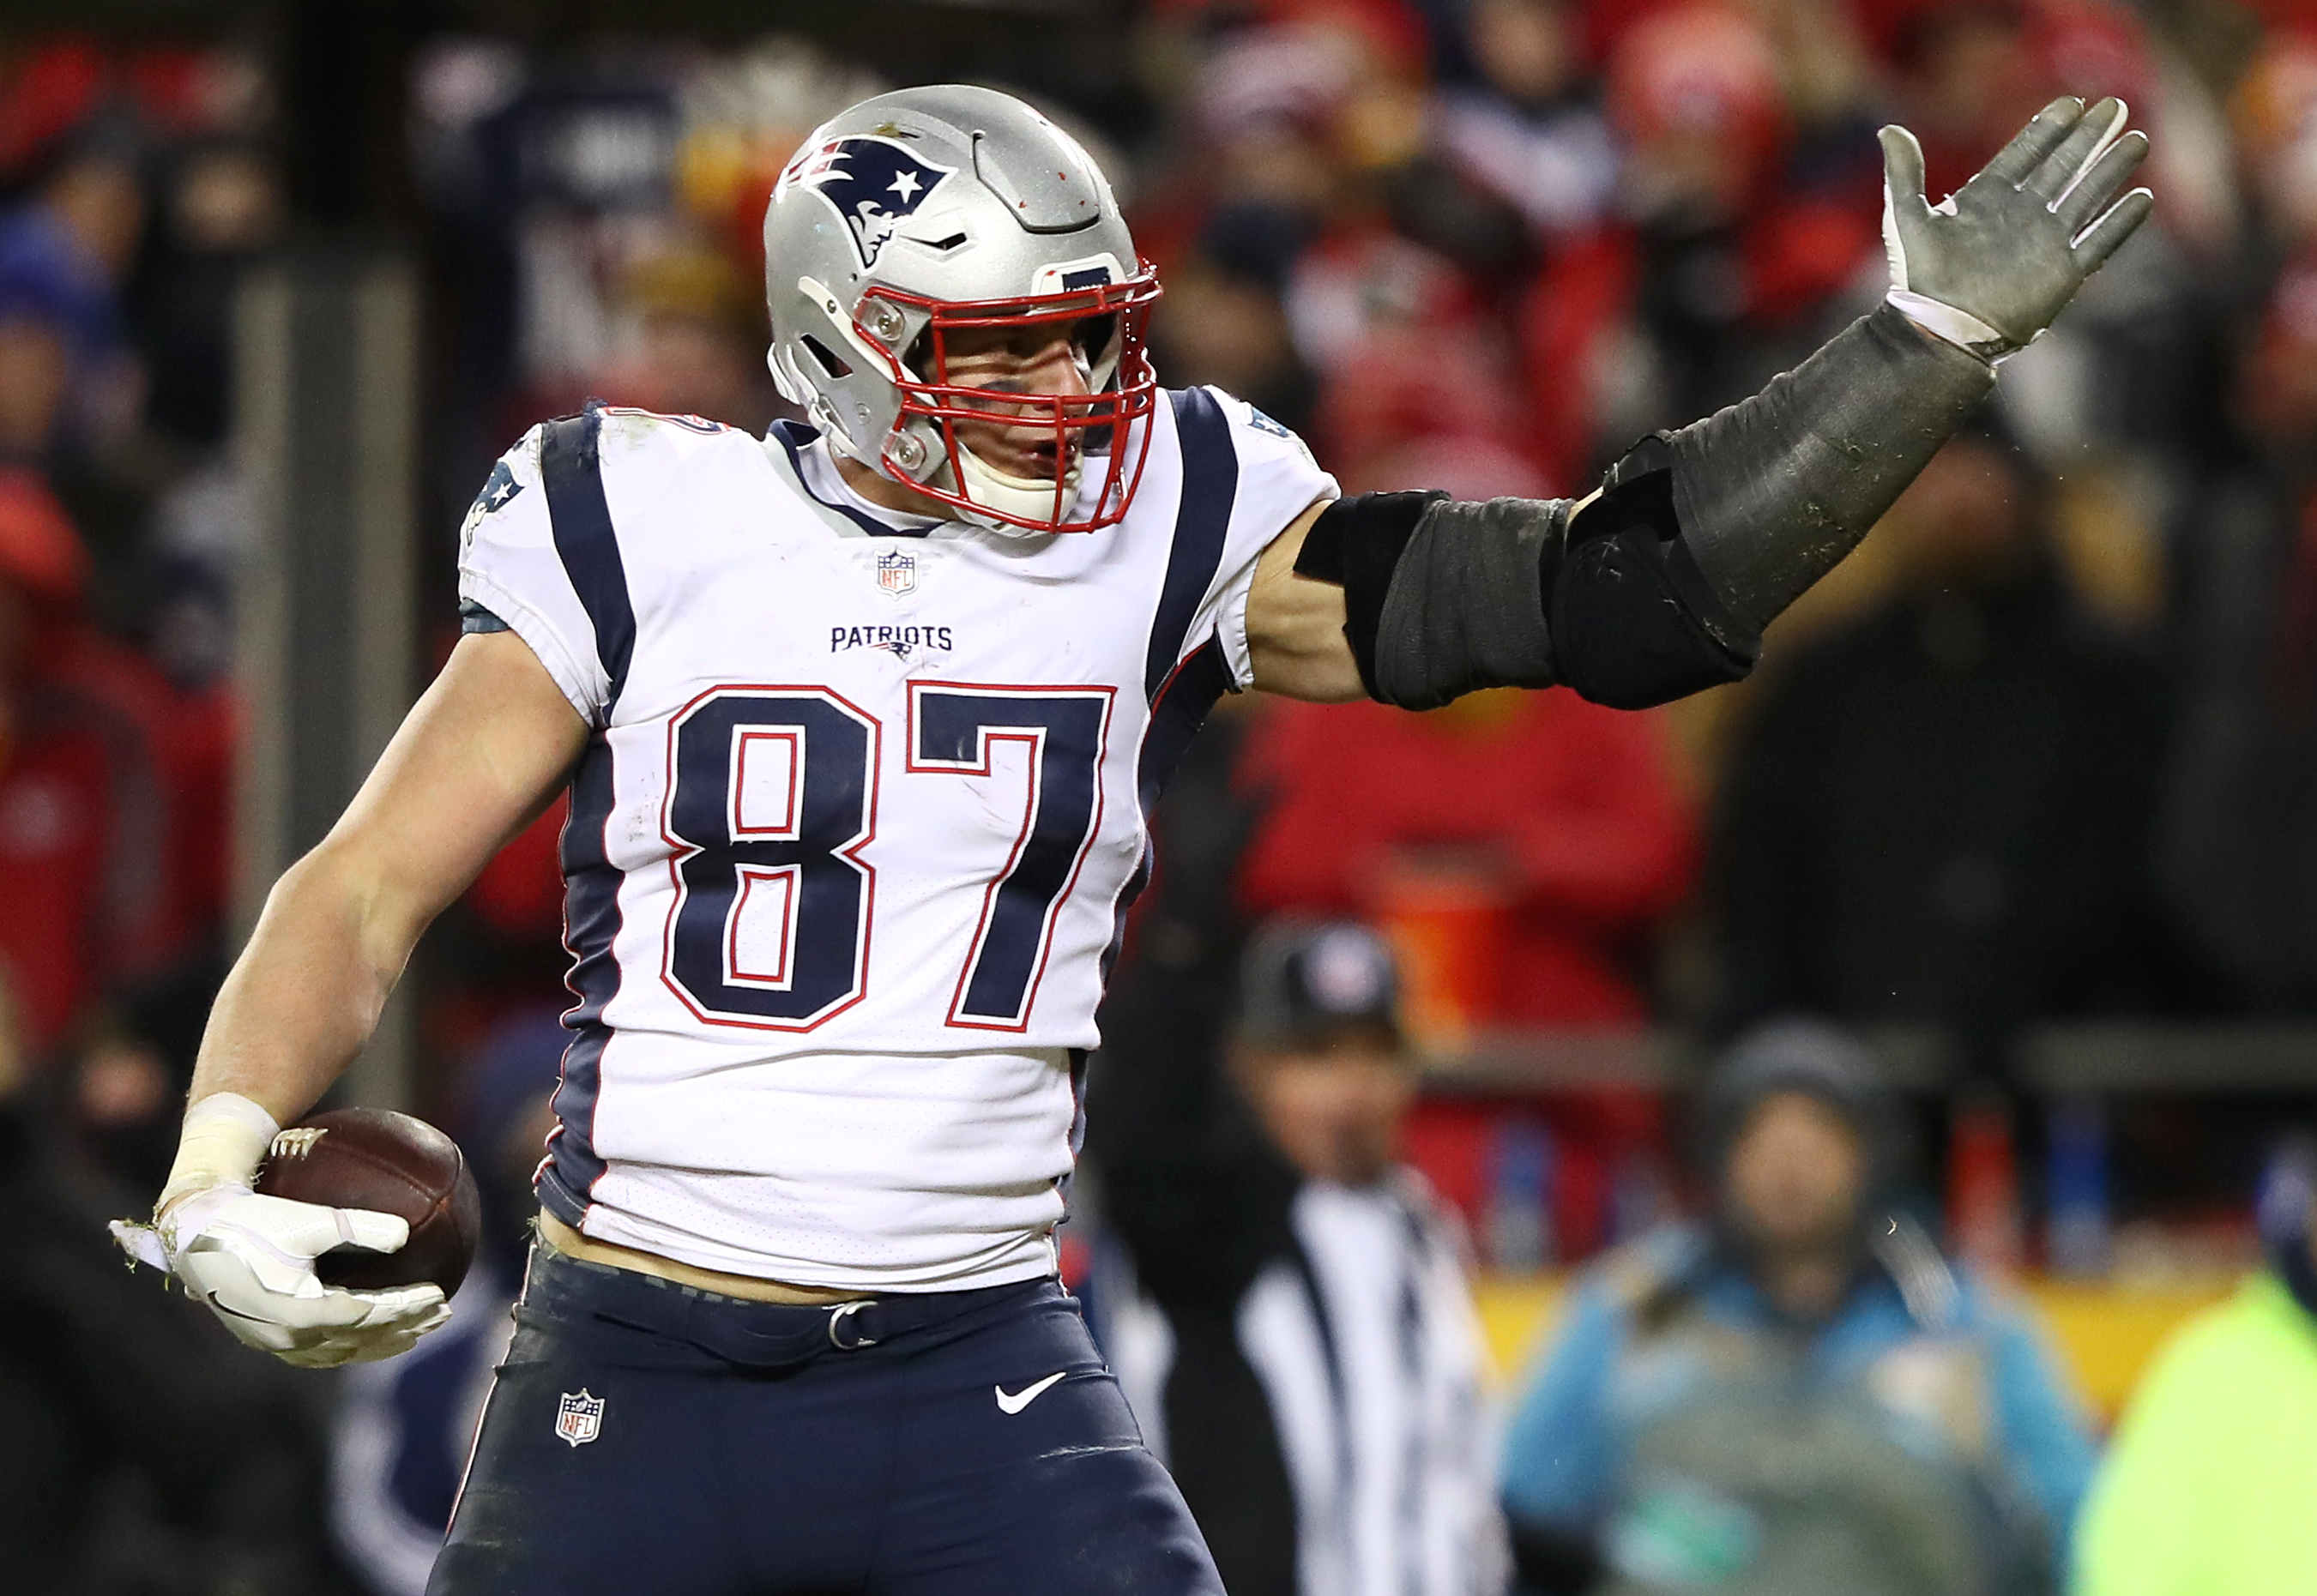 Rob Gronkowski retires with 3 Super Bowl rings. What's next for Patriots?